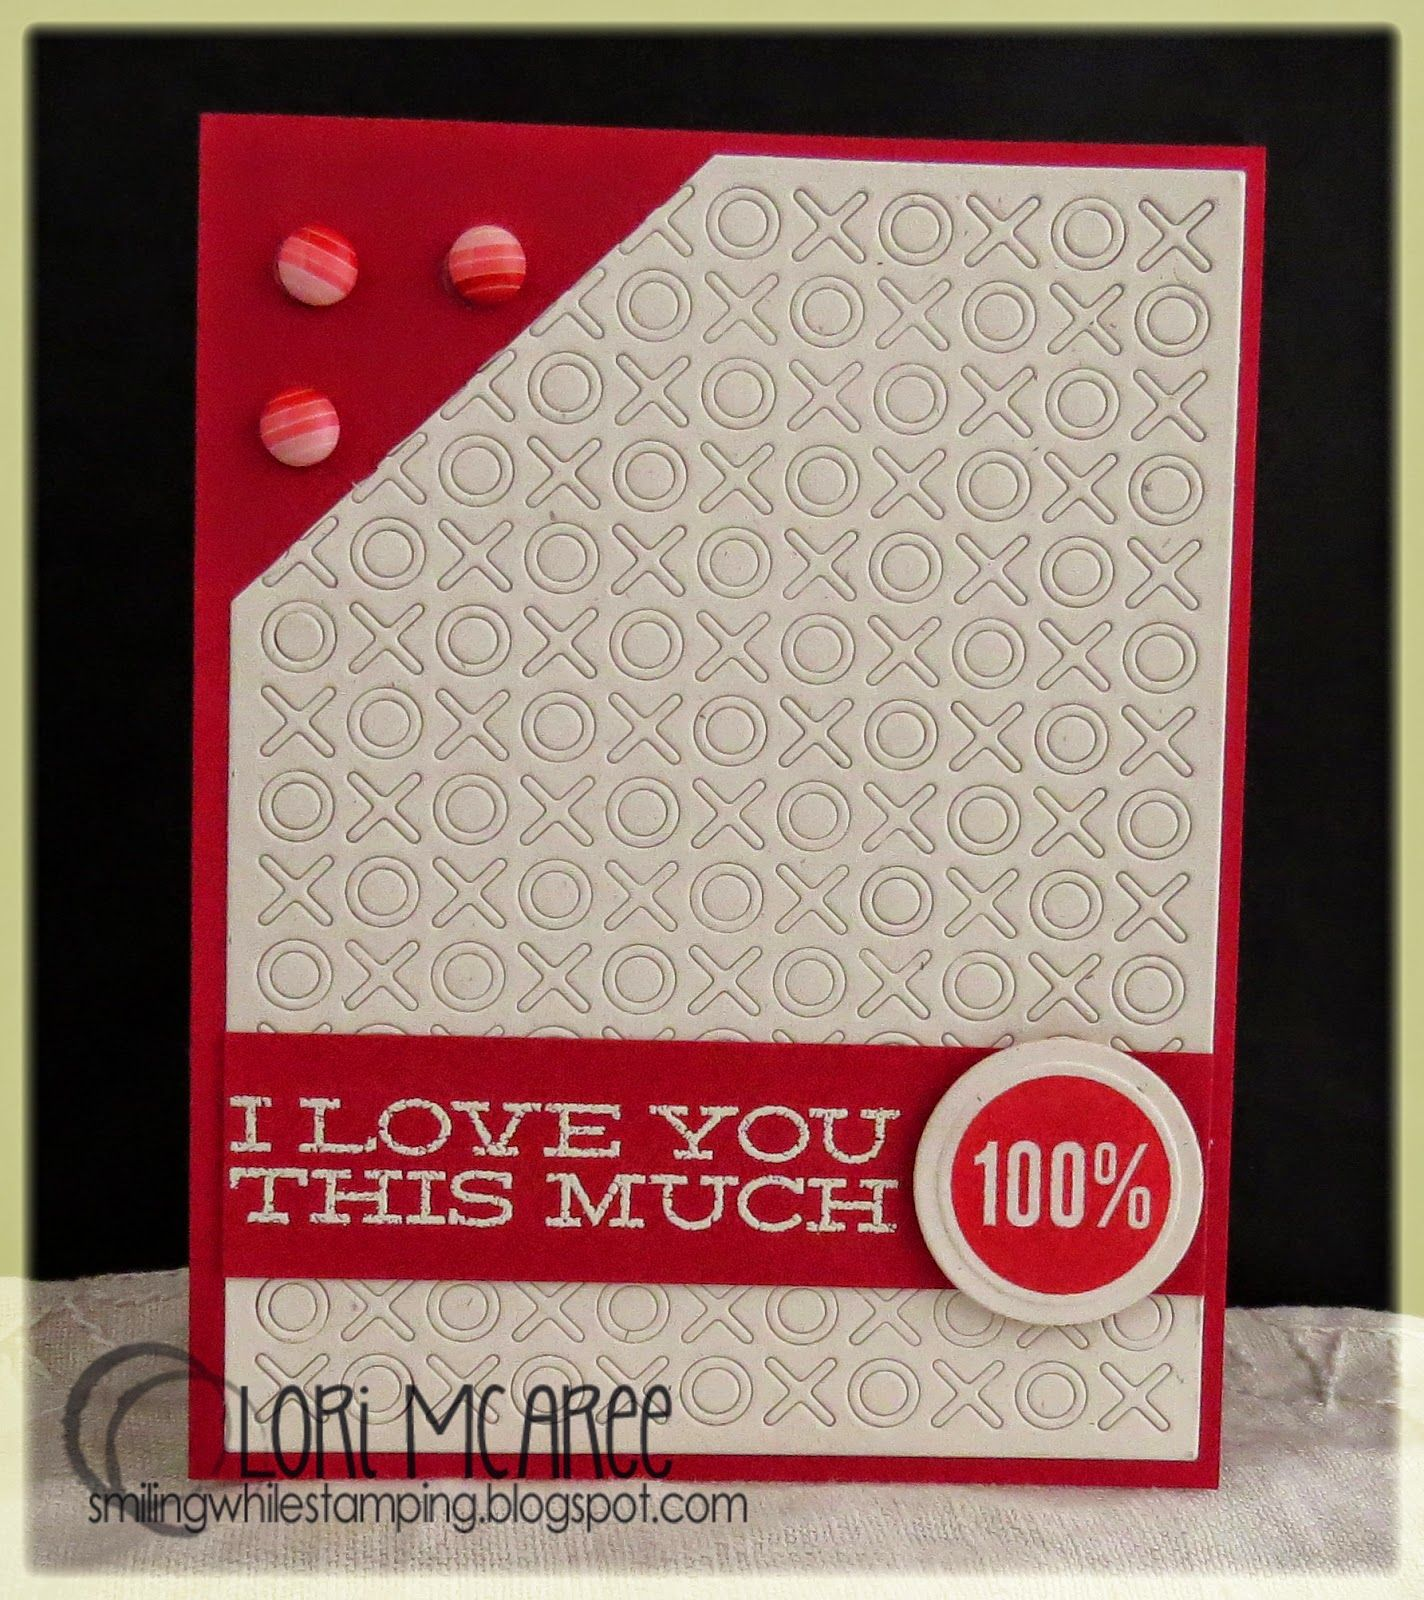 Smiling while Stamping: 100% handmade love/anniversary card made using My Favorite Things Document It-Off the Chart stamp set and Hugs & Kisses Cover-Up